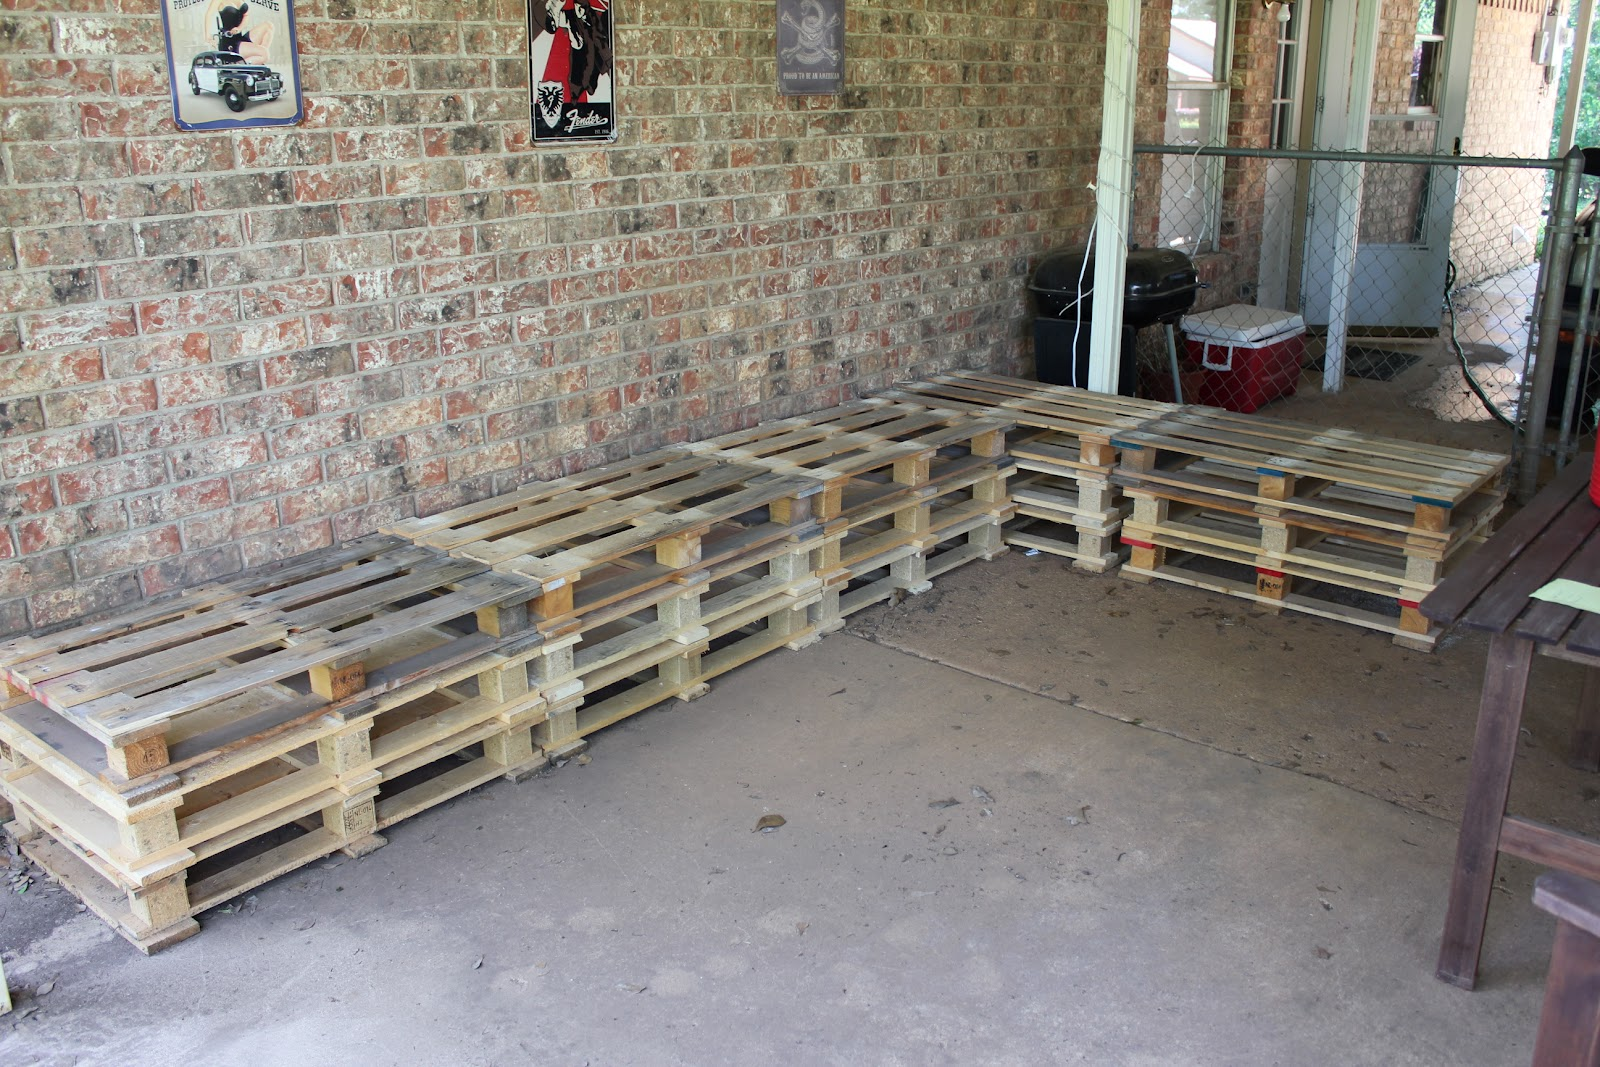 Diy Sofa From Pallets Wrought Iron Tables Black Outdoor Patio Furniture Img 2891 Jpg